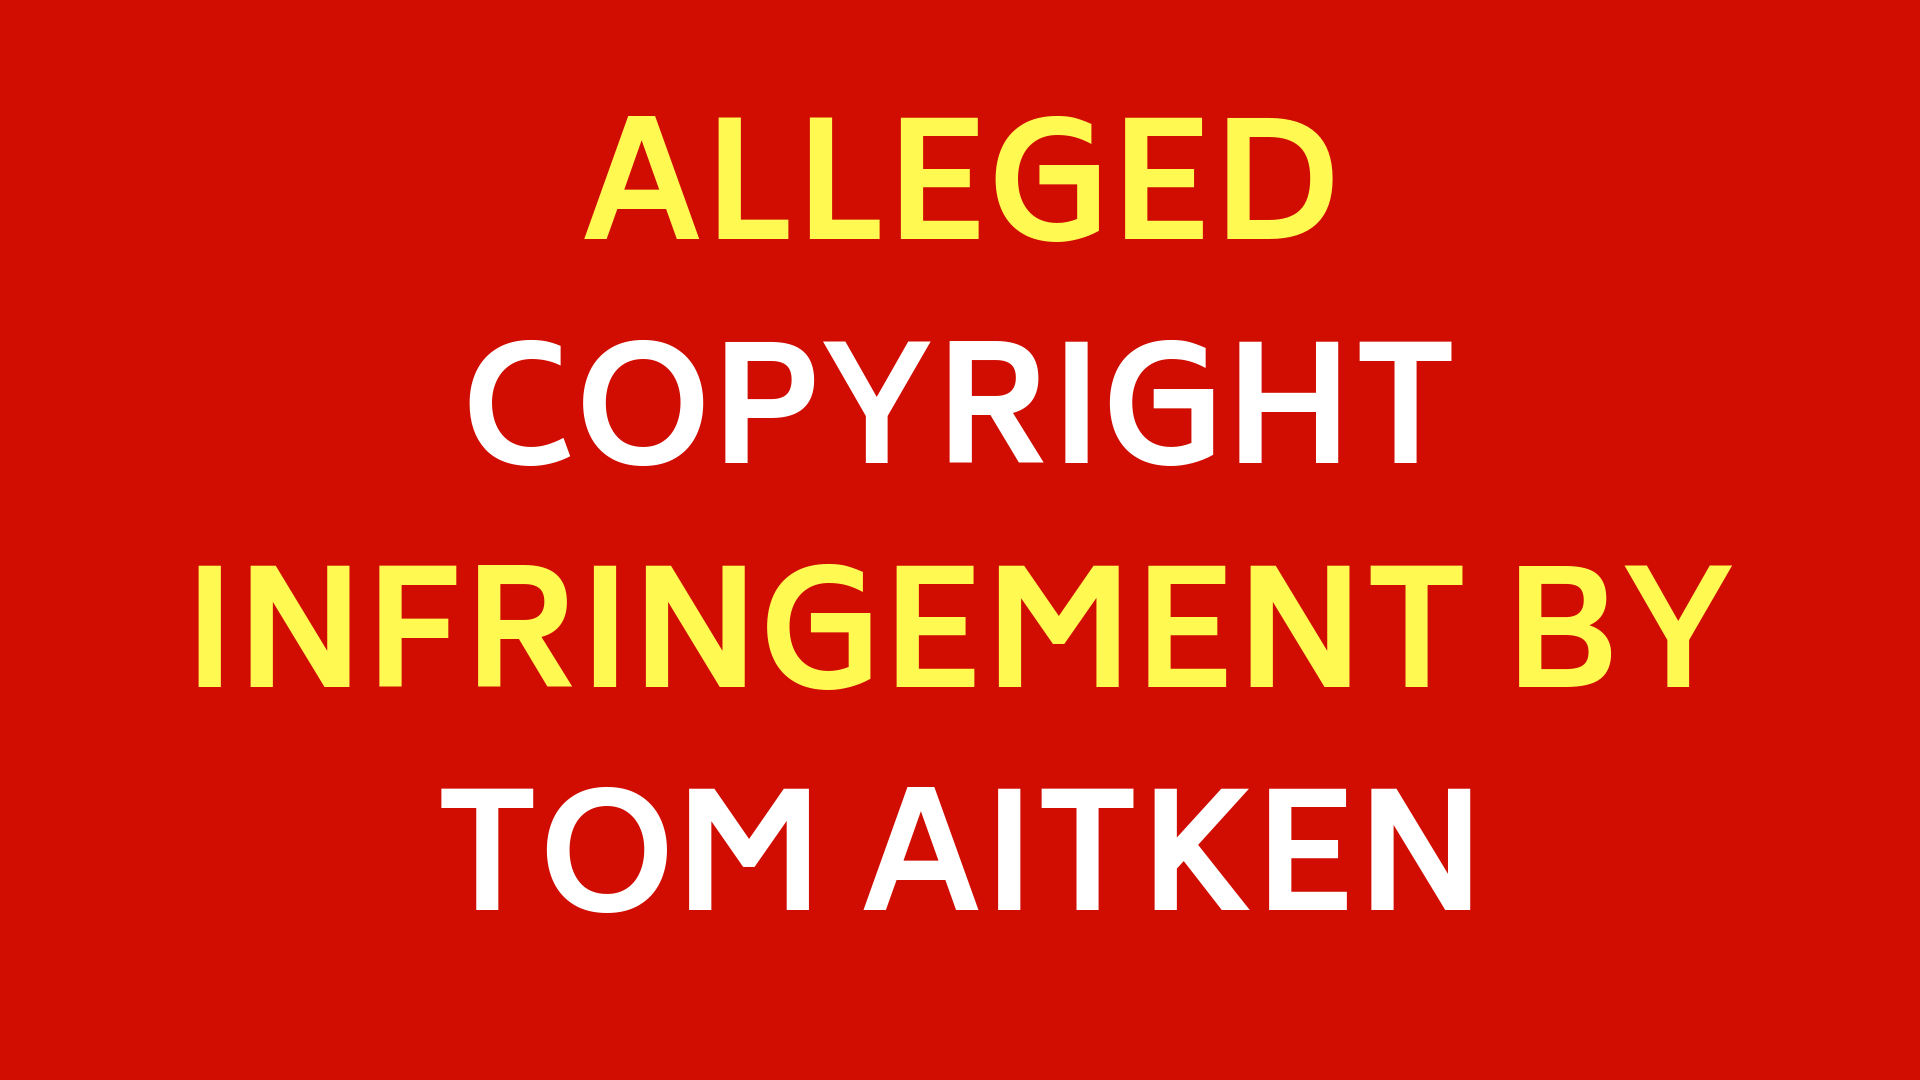 ALLEGED COPYRIGHT INFRINGEMENT BY TOM AITKEN